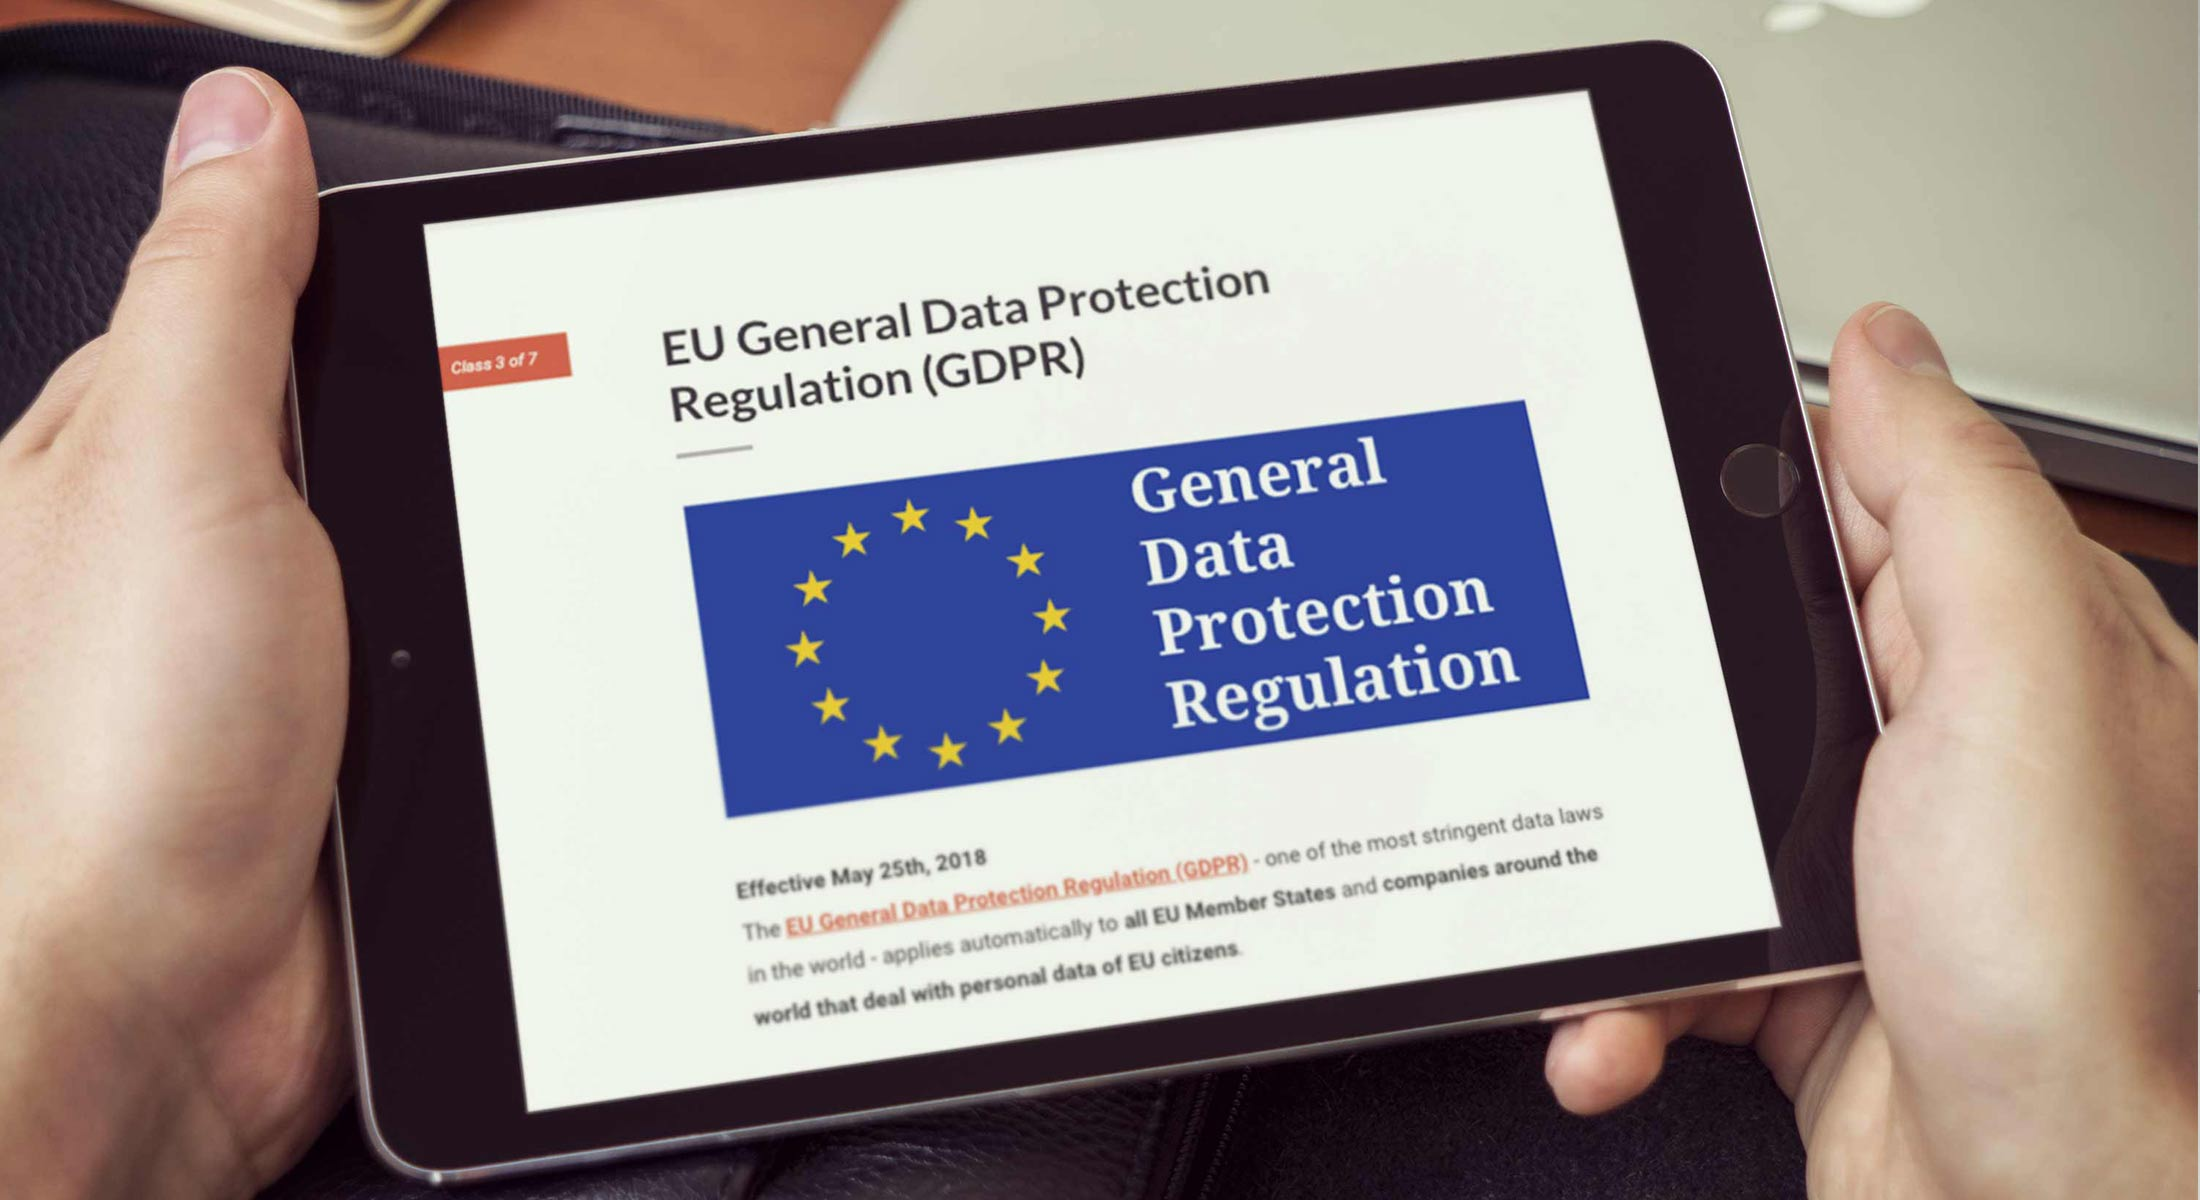 Hands holding tablet with a responsive elearning course page about the General Data Protection Regulation